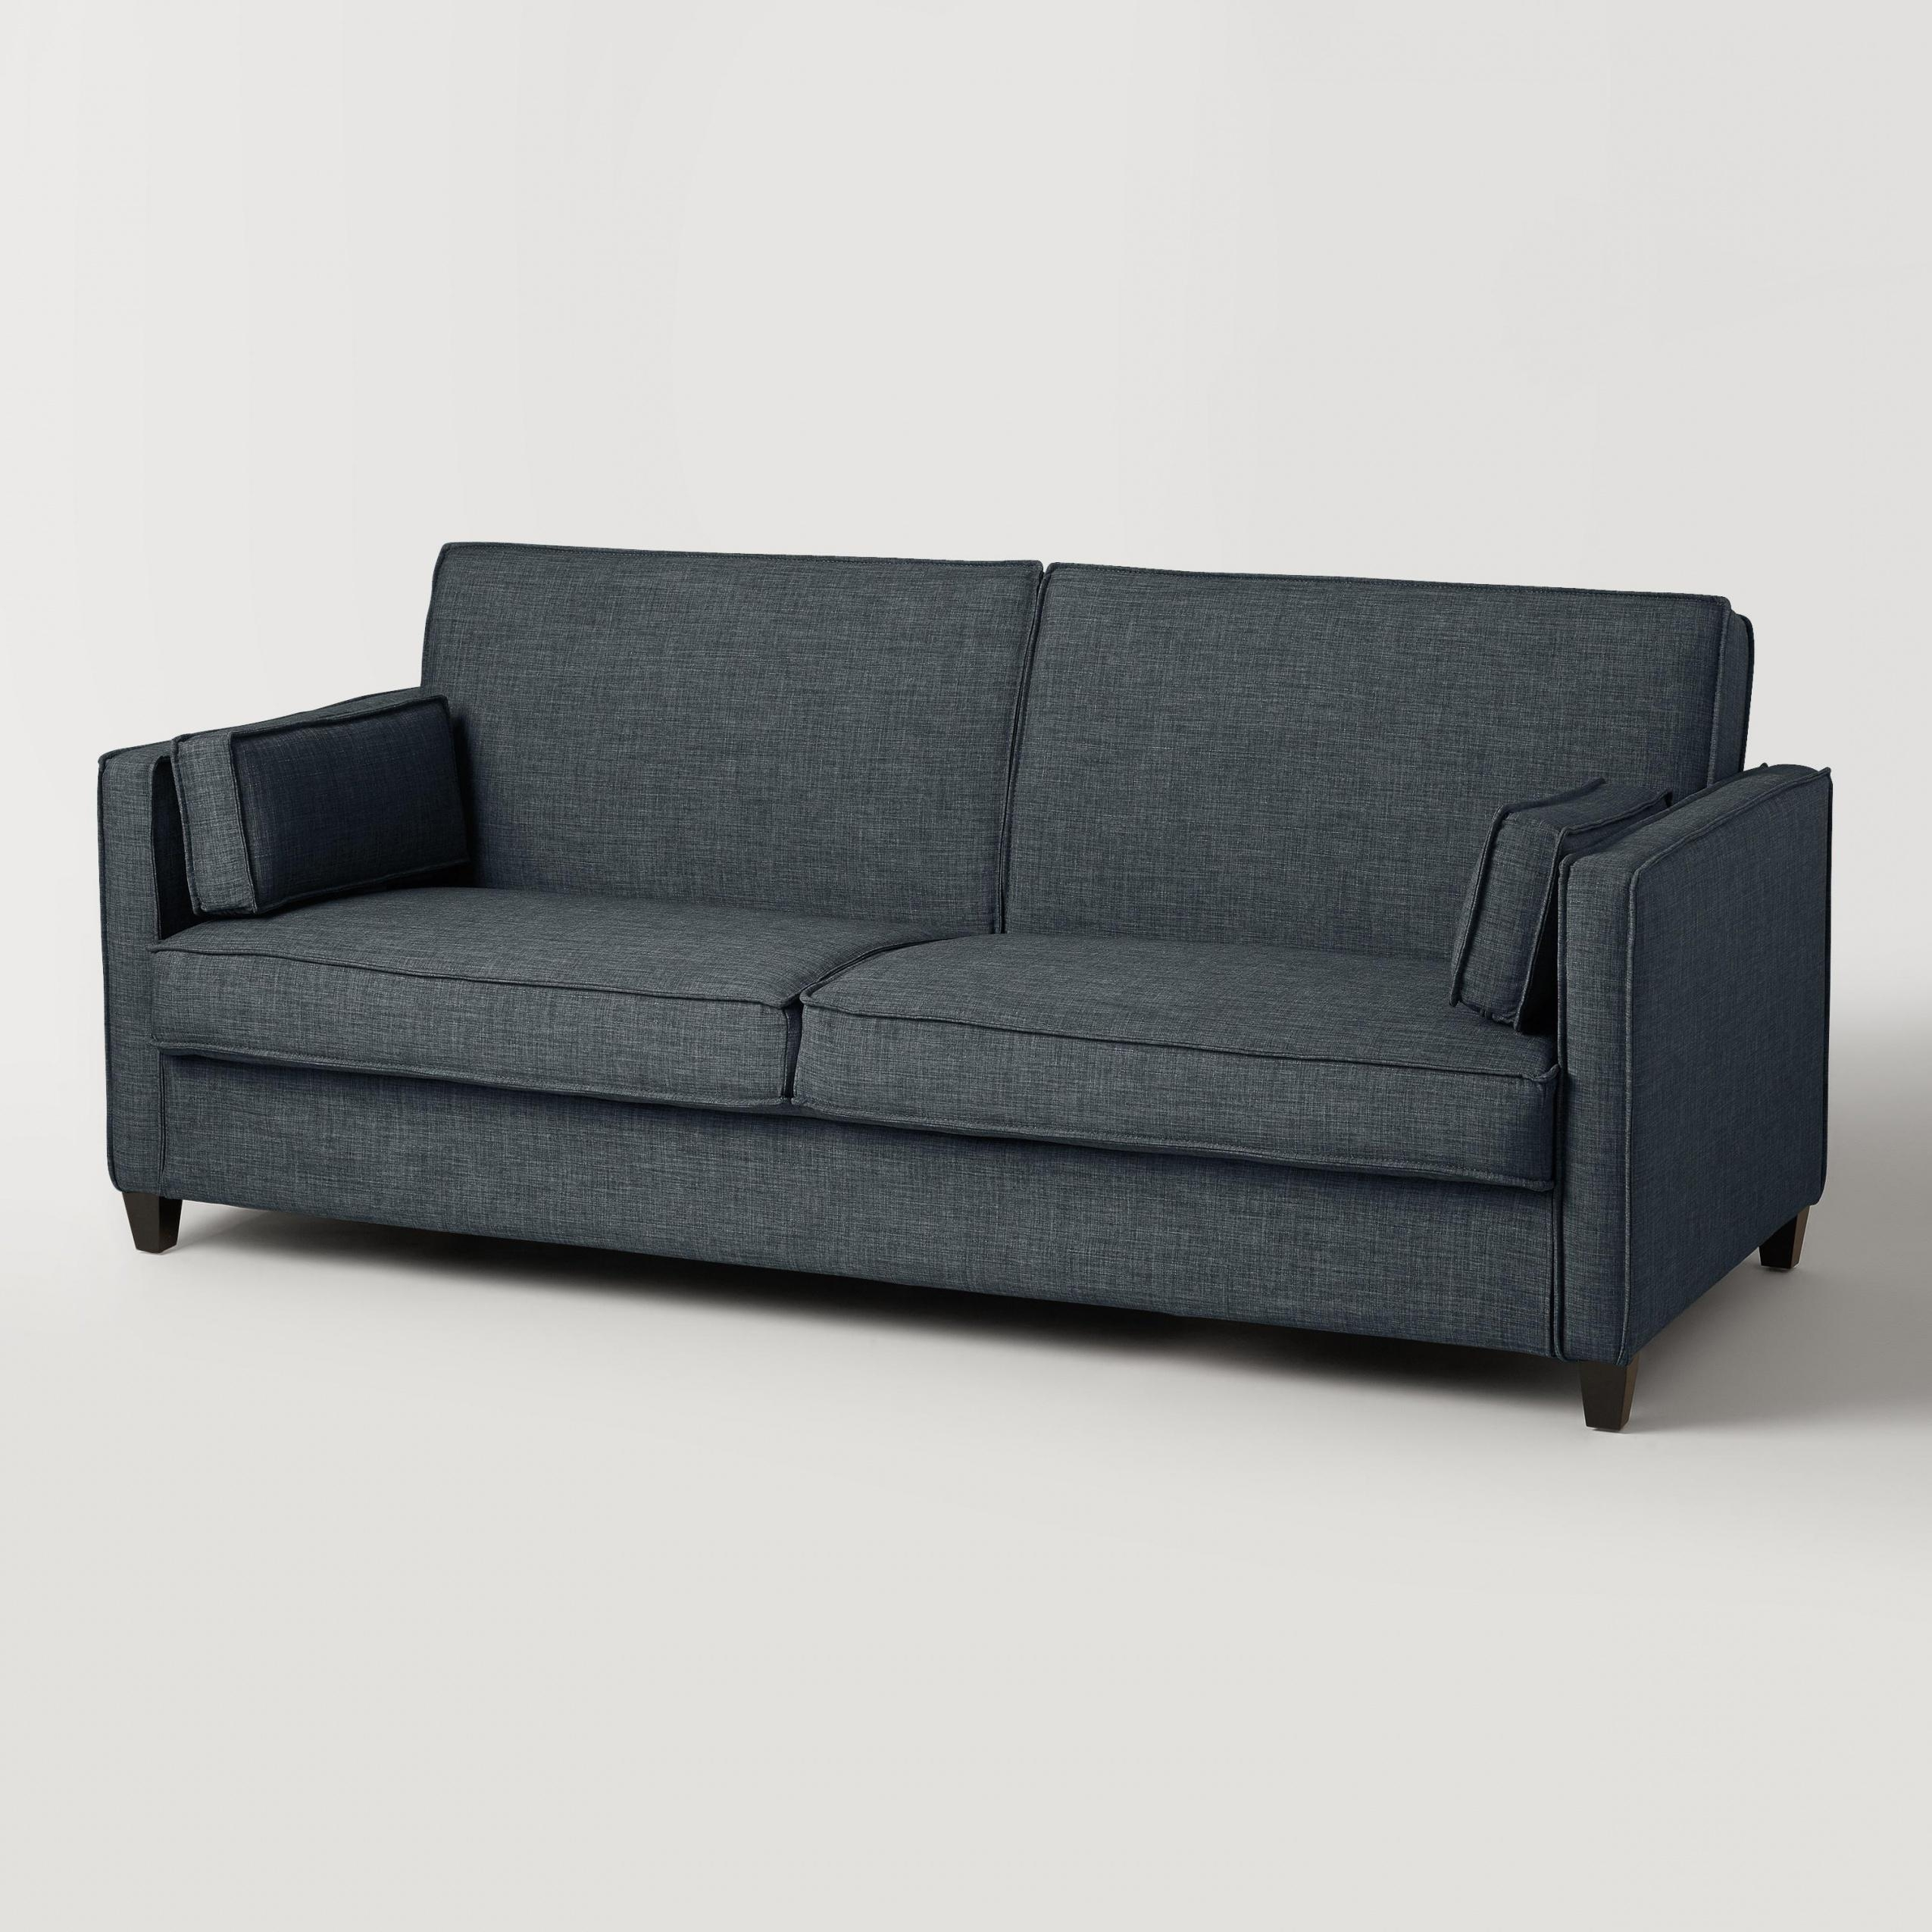 Sofa Bed Nyc Cheap – Elite Home With Cheap Sofa Beds (Image 17 of 20)